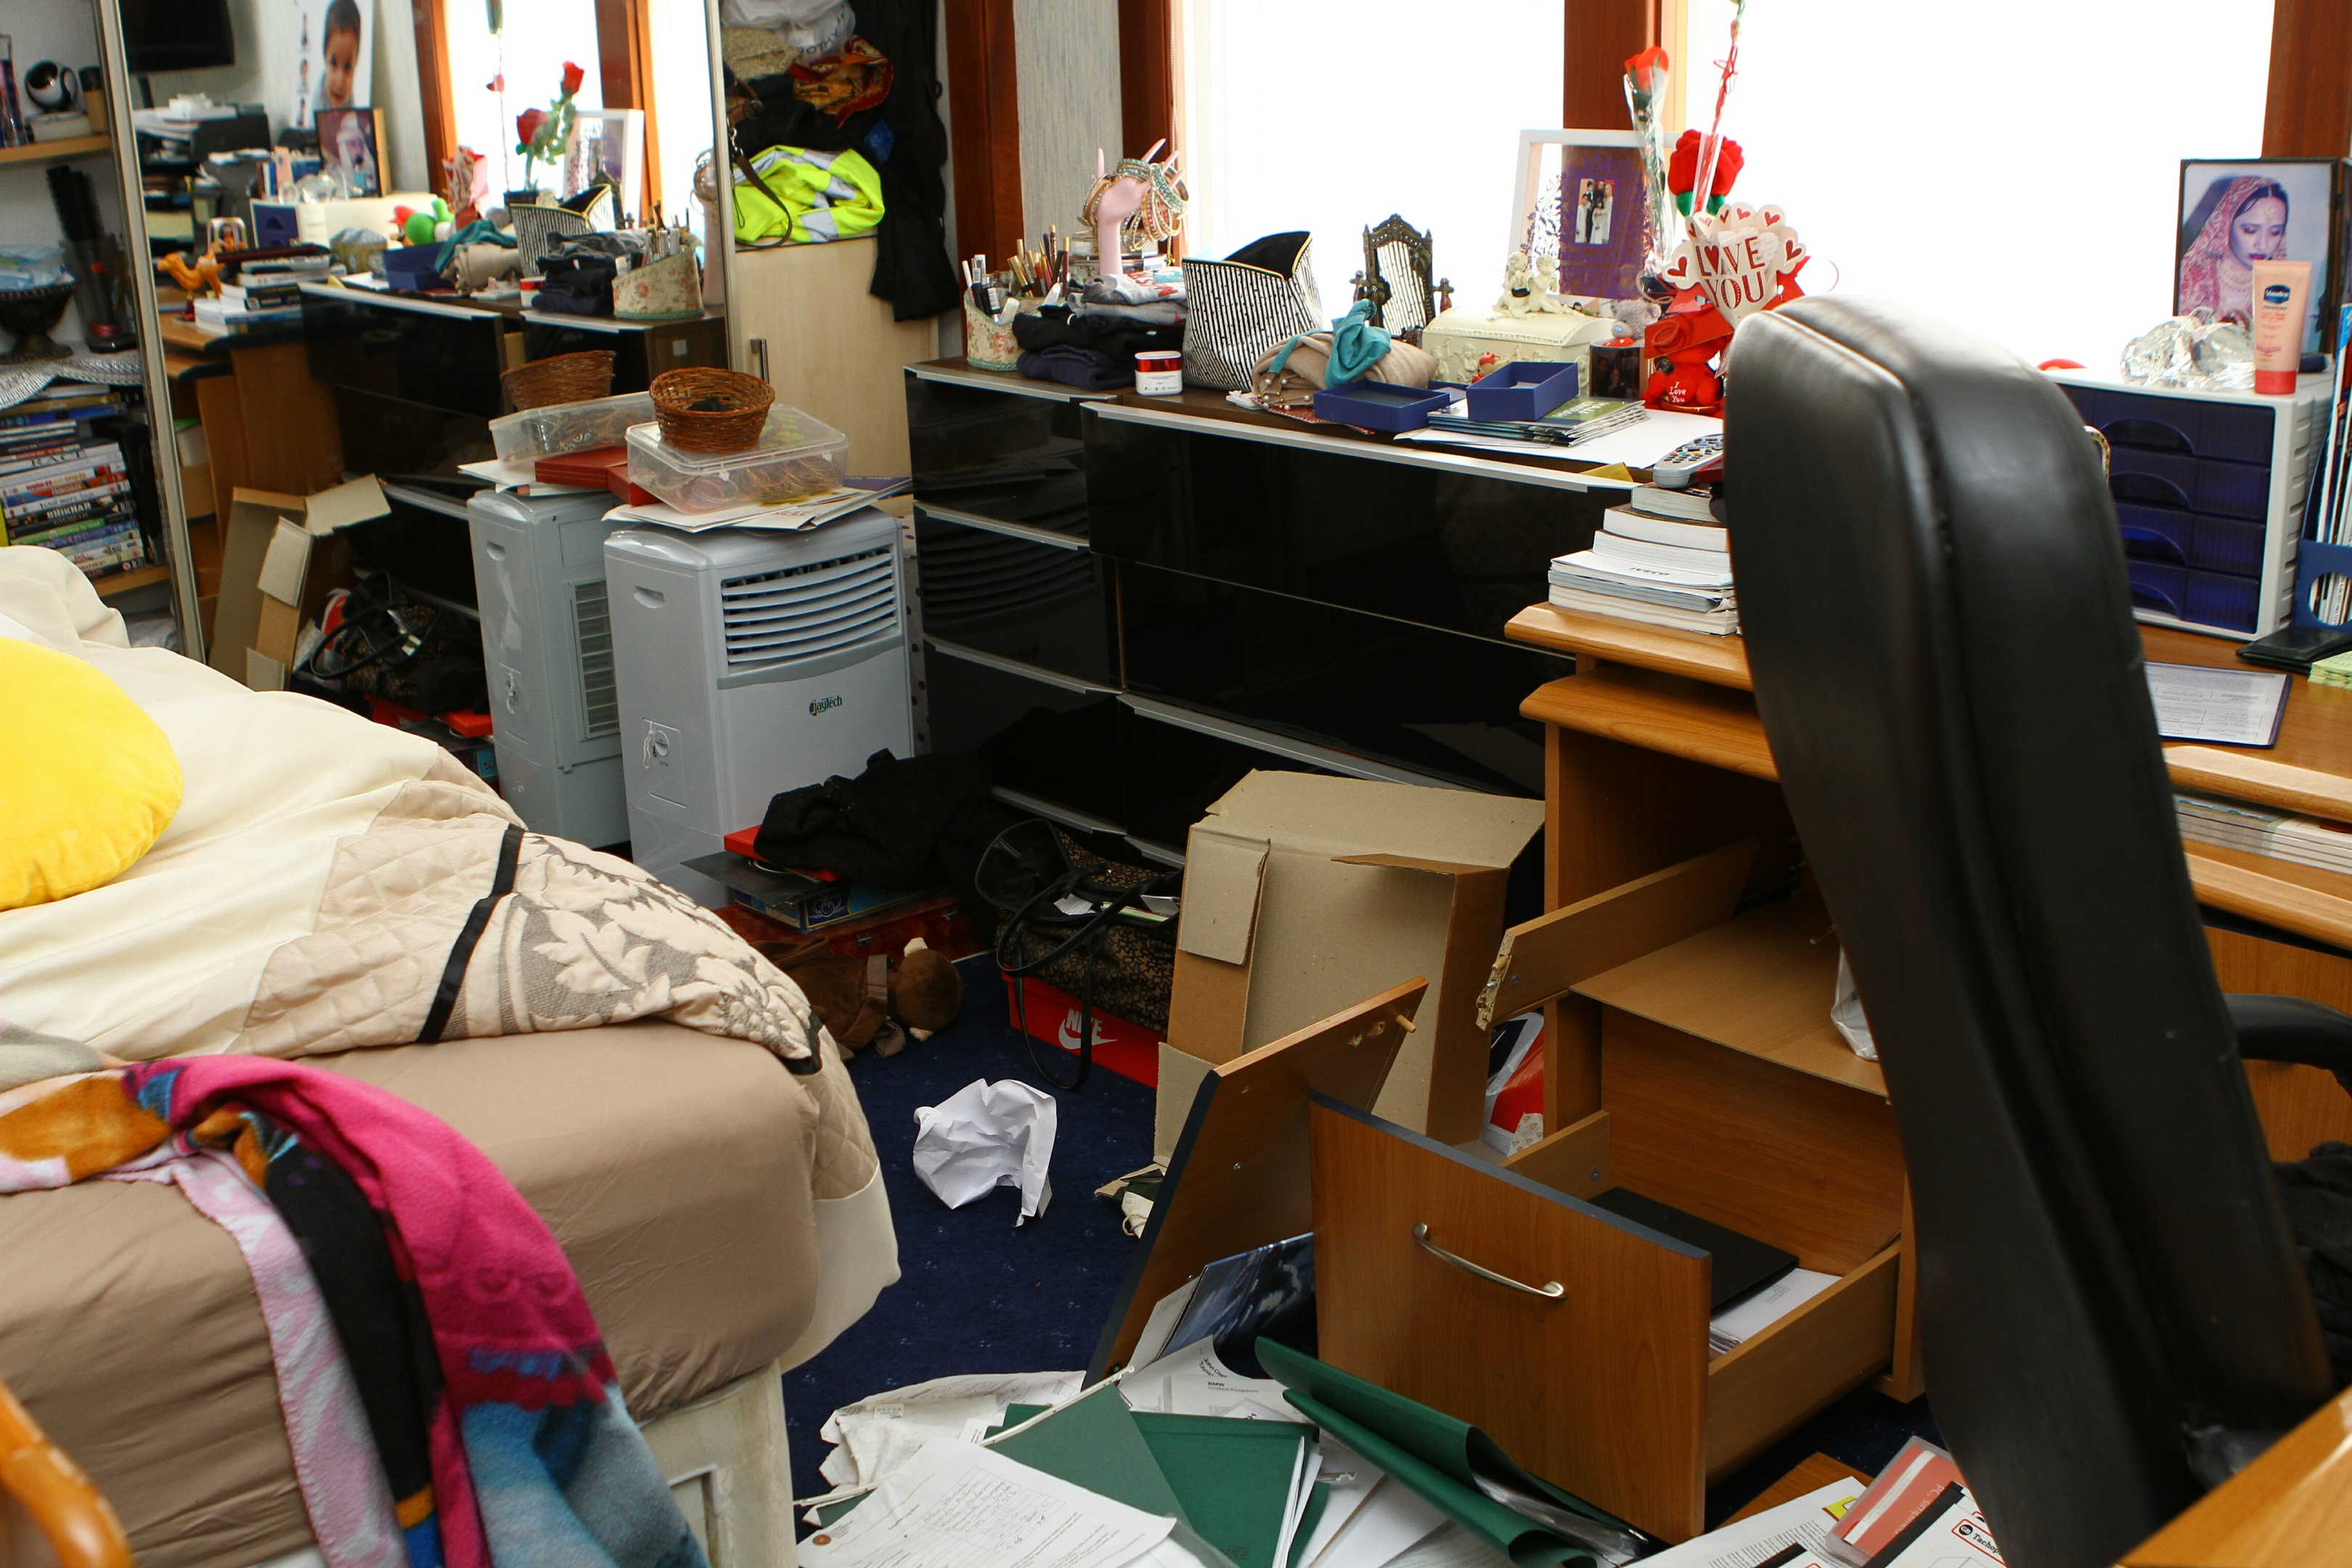 The mess in the bedroom in the aftermath of the robbery at the house in Old Glamis Road